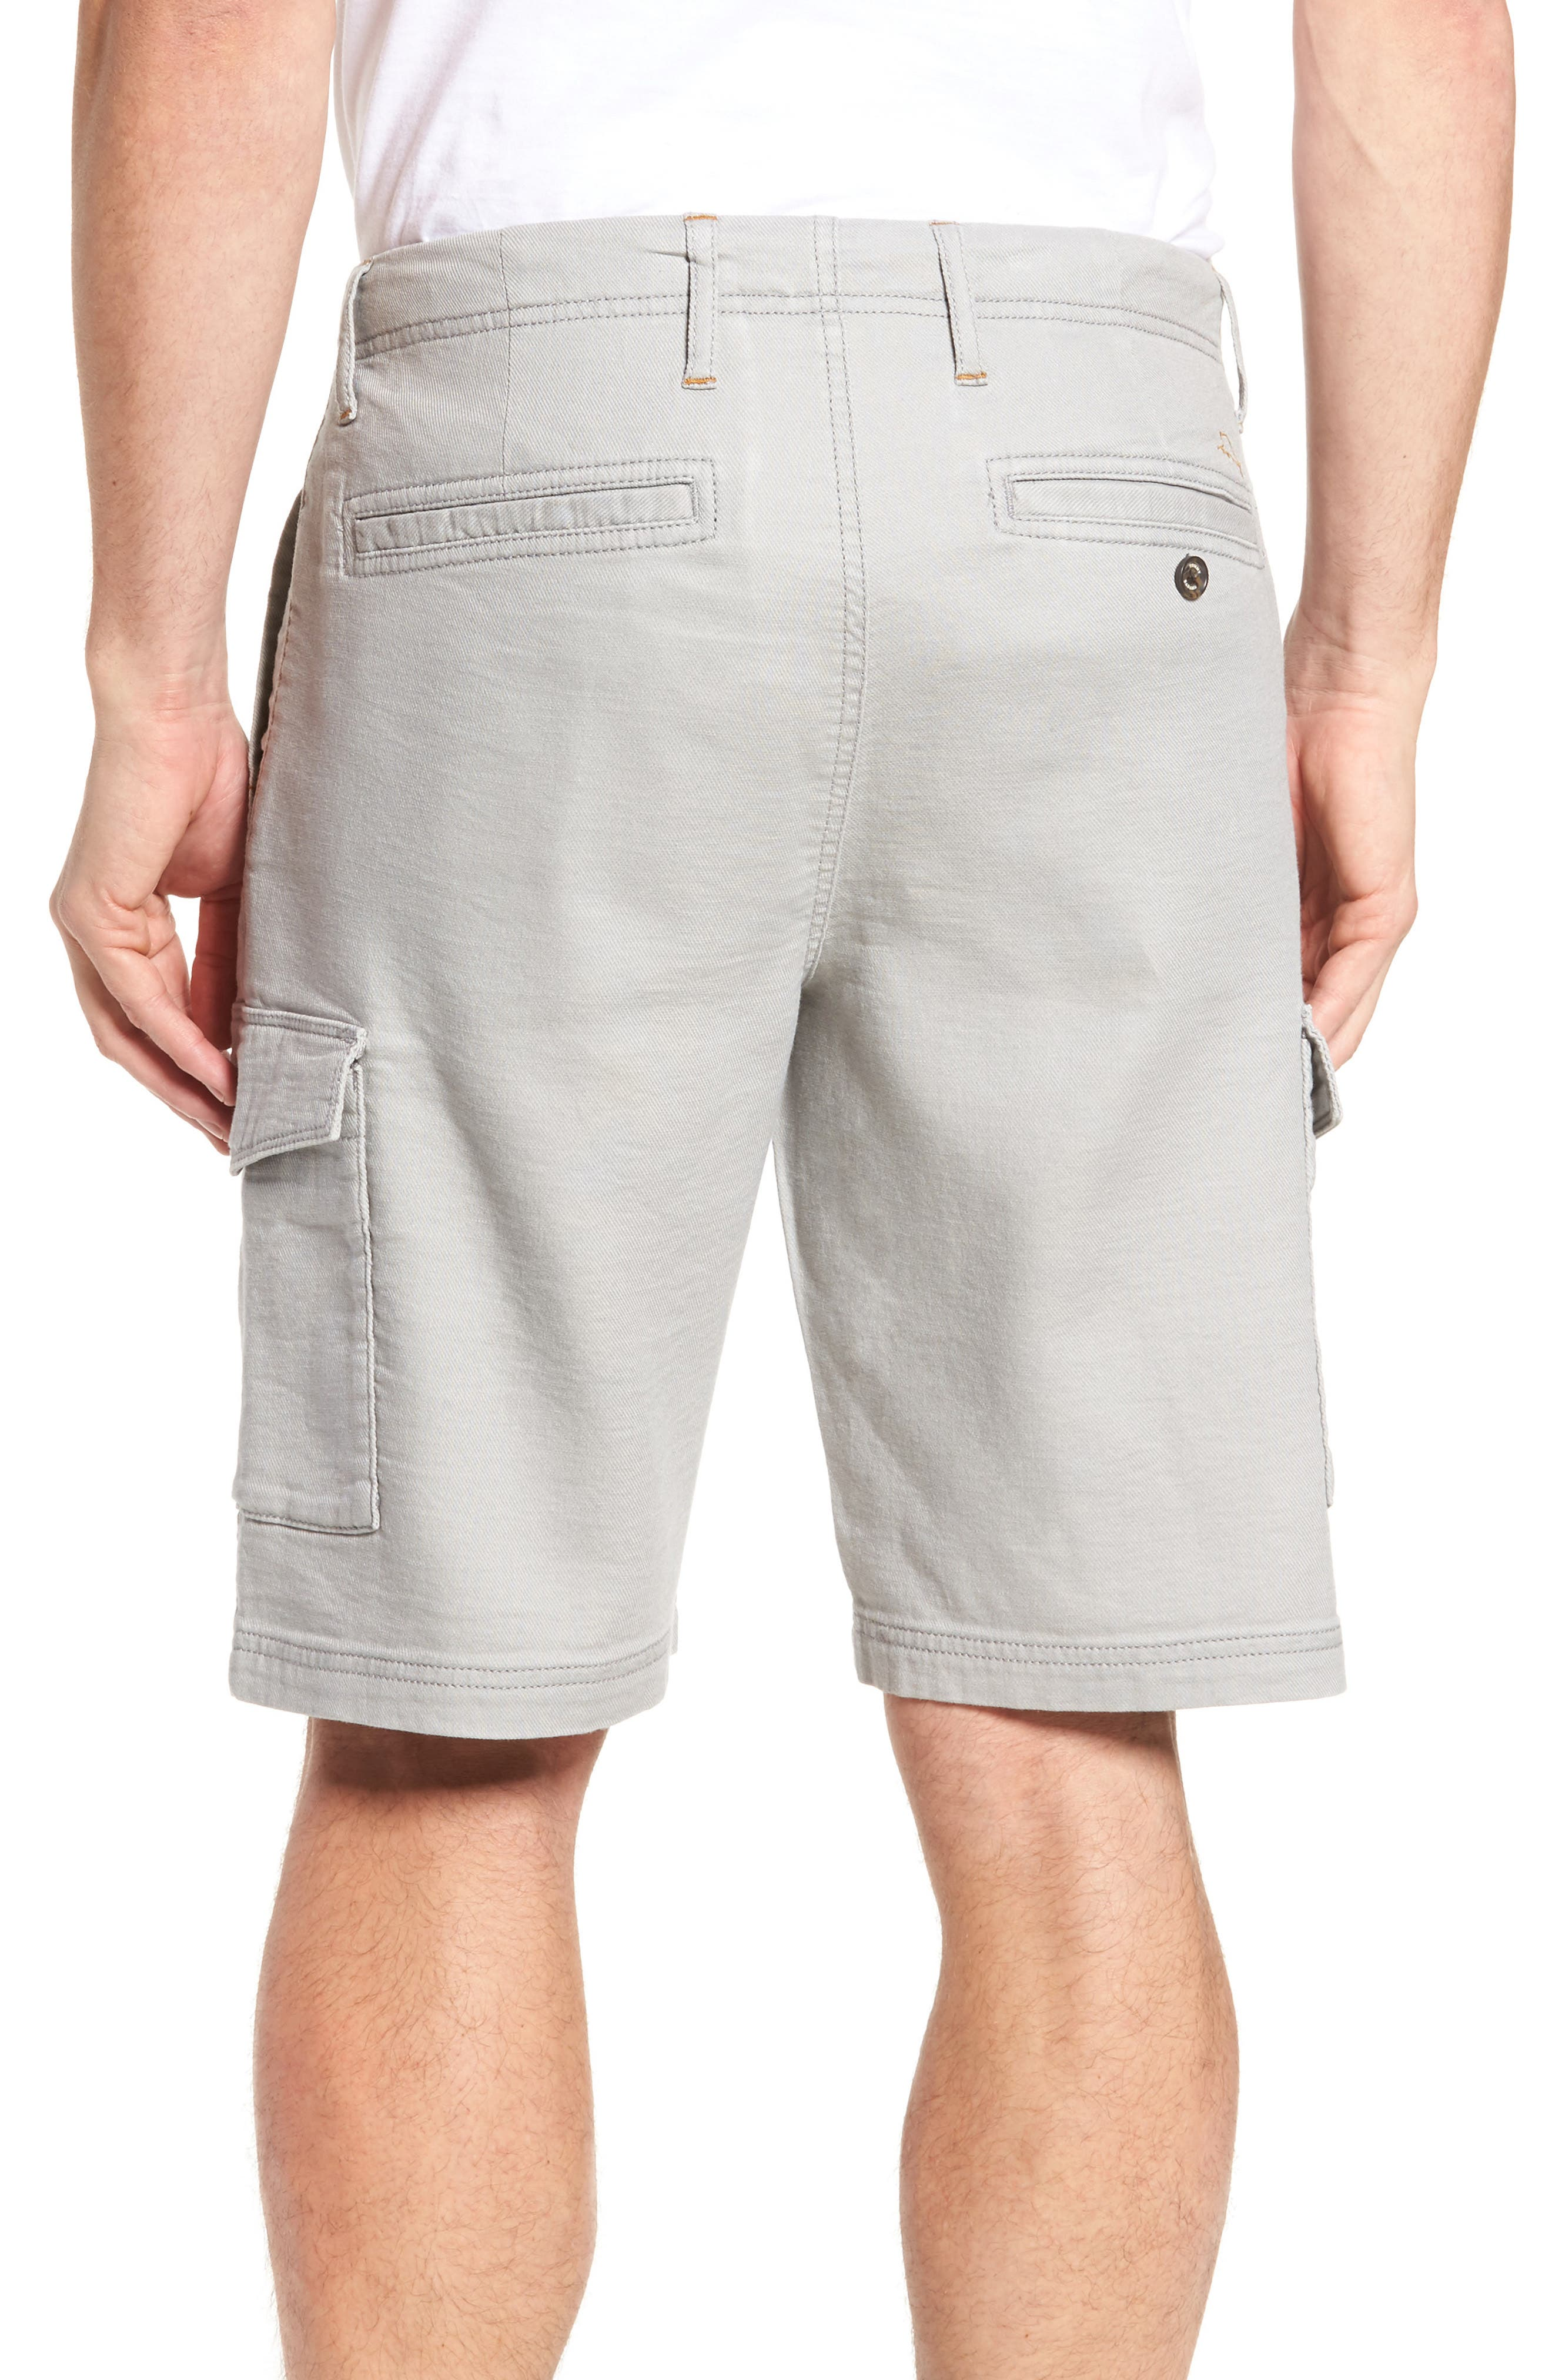 Edgewood Cargo Shorts,                             Alternate thumbnail 2, color,                             Argent